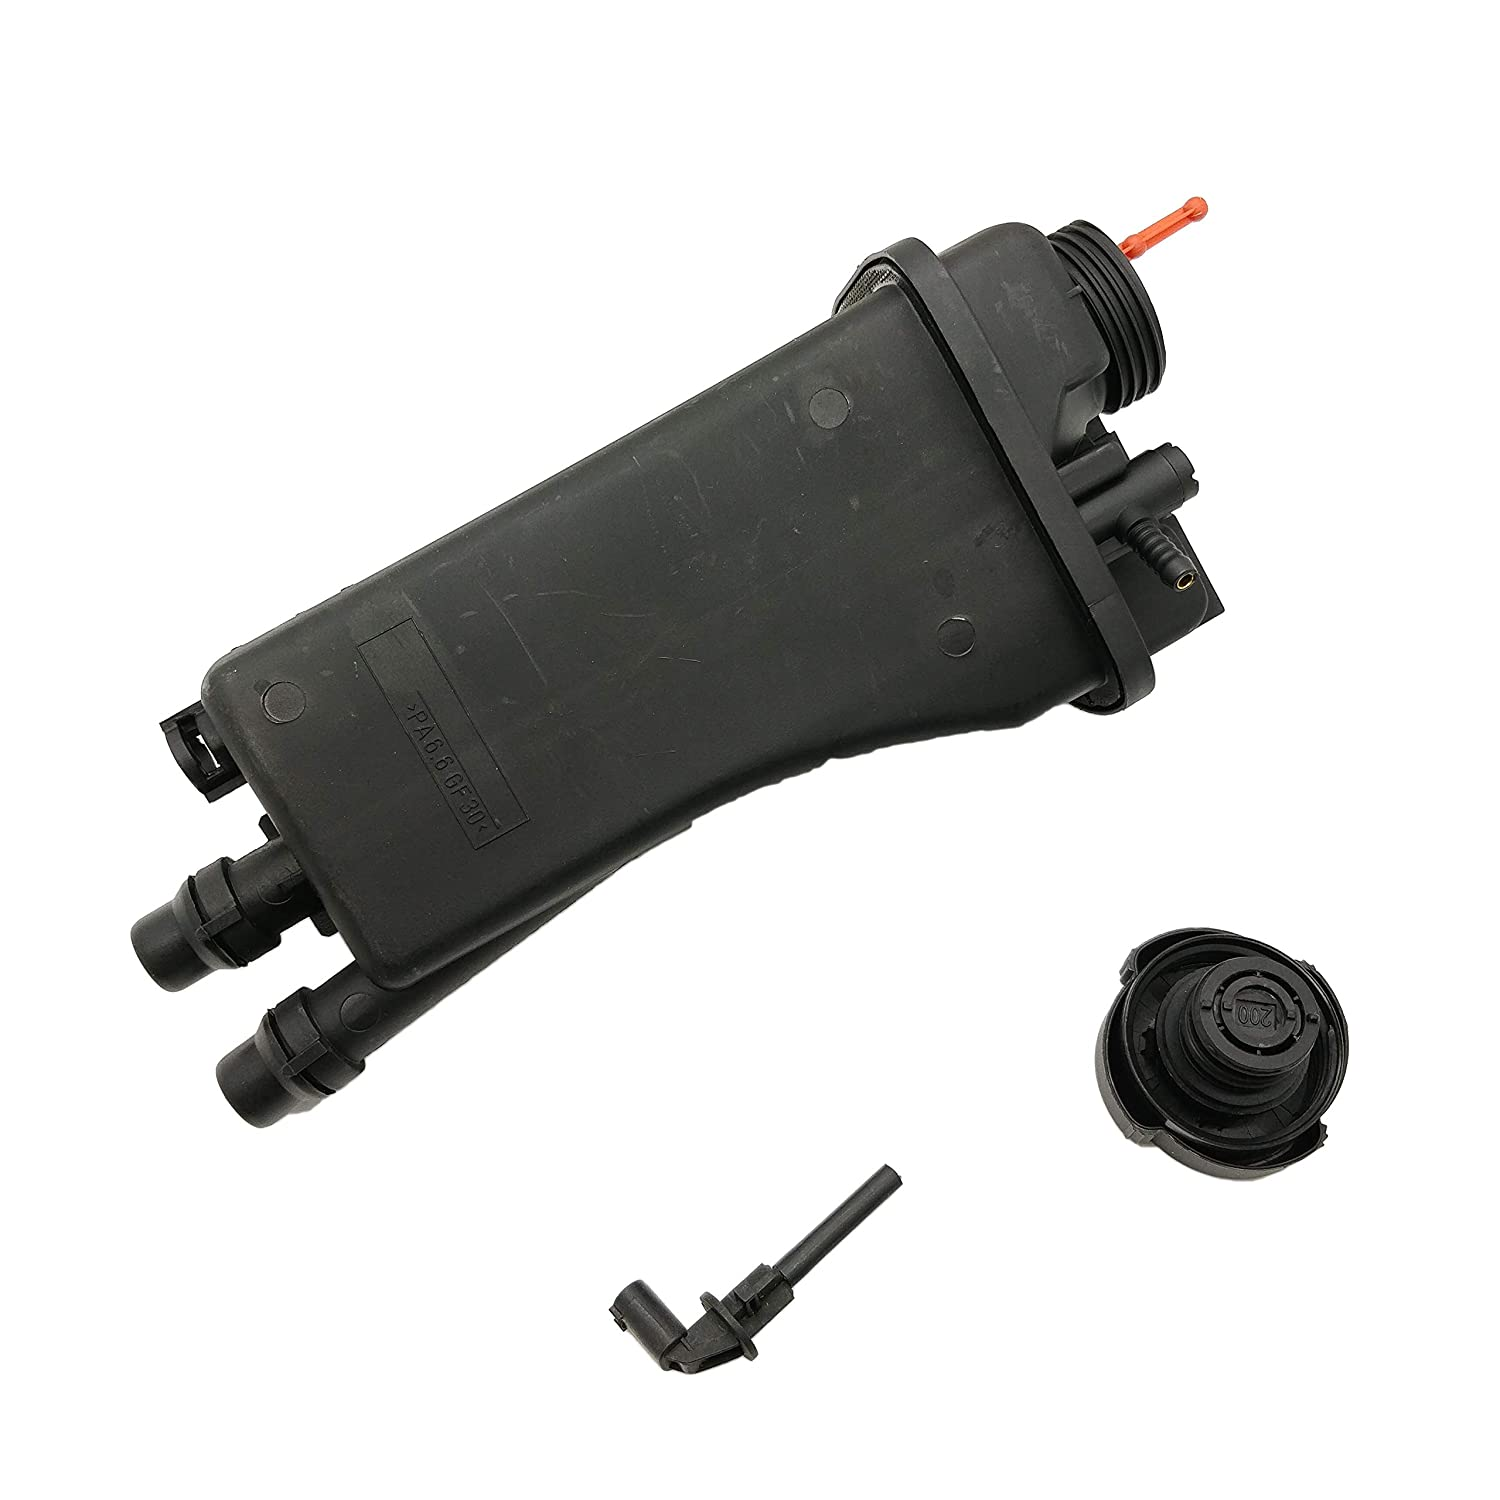 Coolant Recovery Tank with Sensor and Tank for 1999-2003 E39 BMW 525i 528i 530i Yupin Auto Parts Co.; Ltd. 17111436381